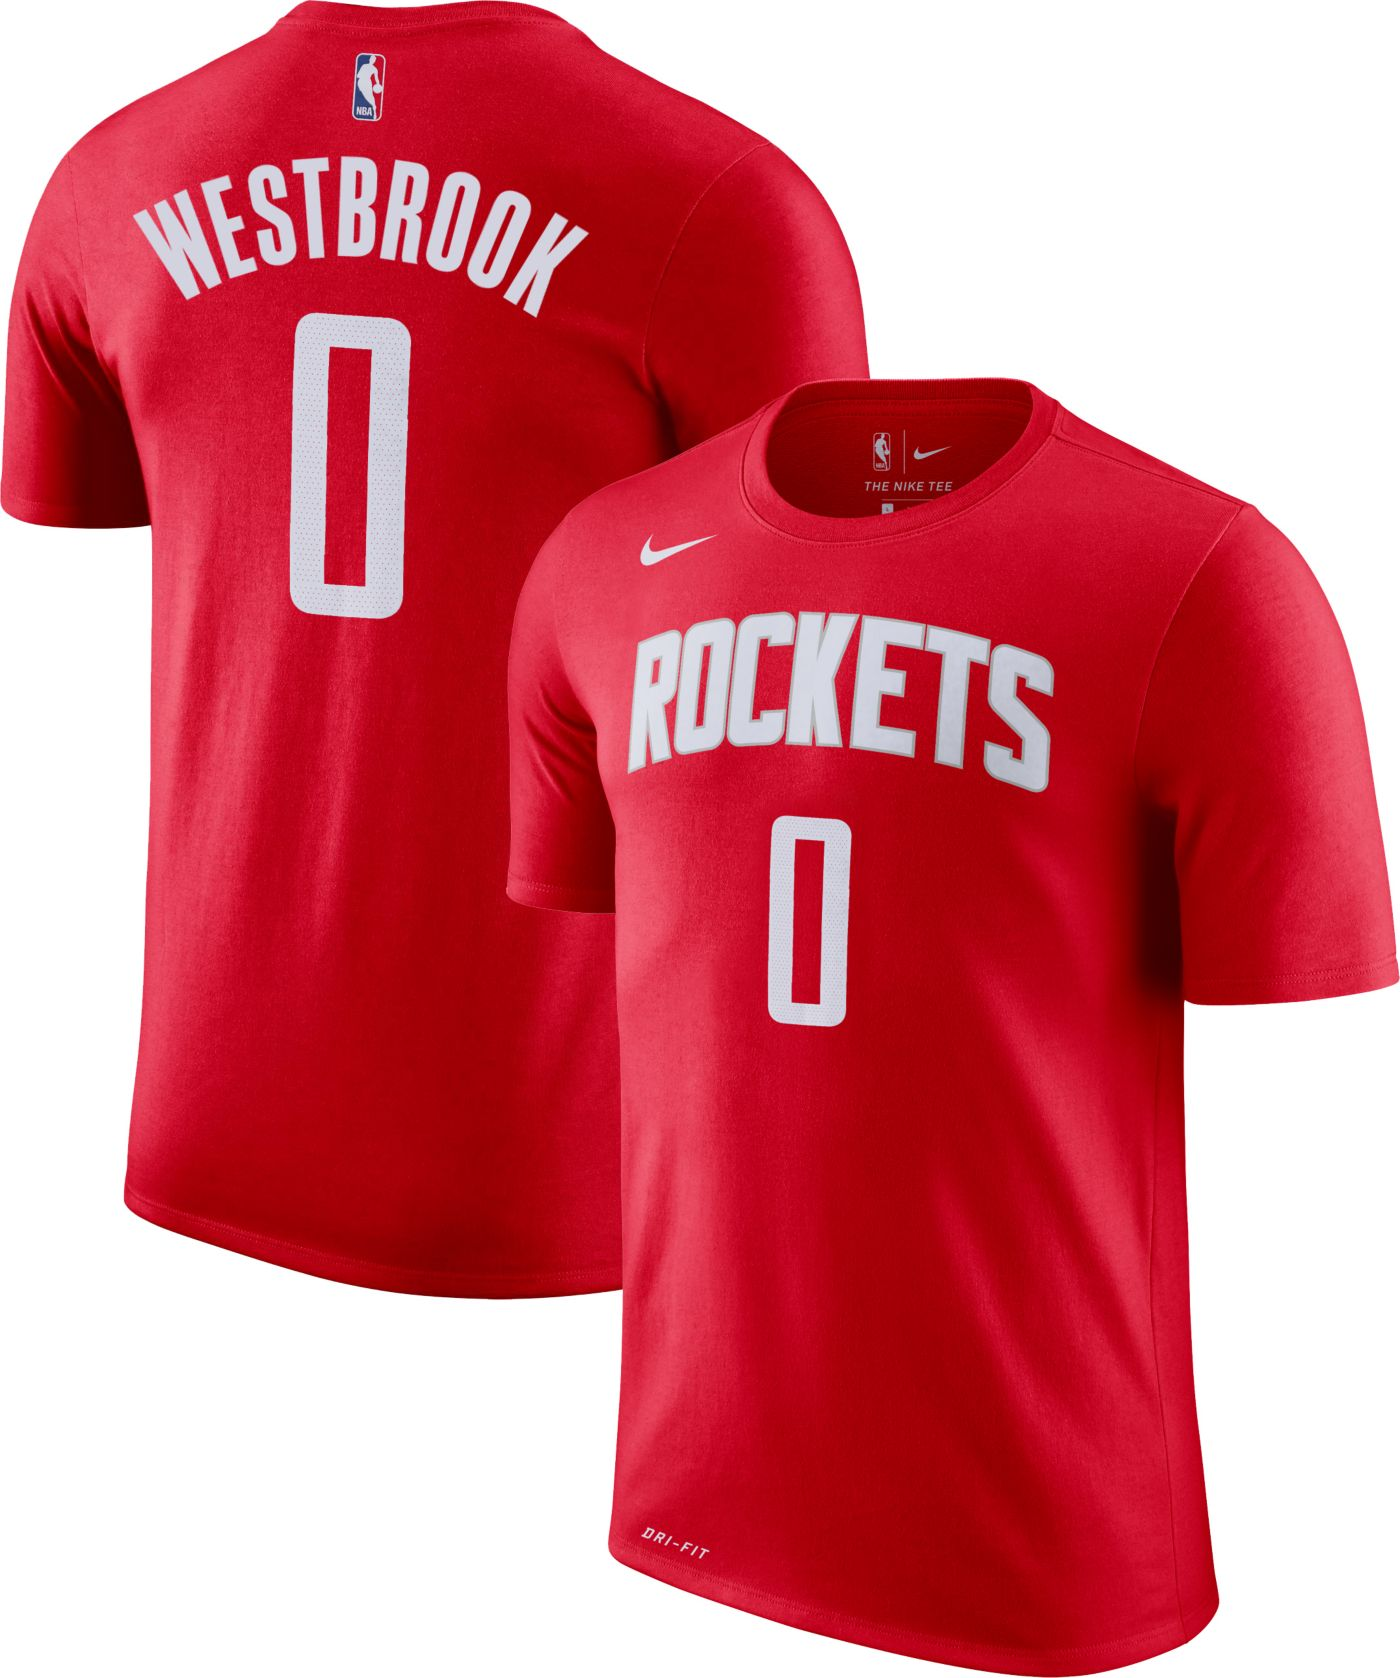 Nike Youth Houston Rockets Russell Westbrook #0 Dri-FIT Red T-Shirt